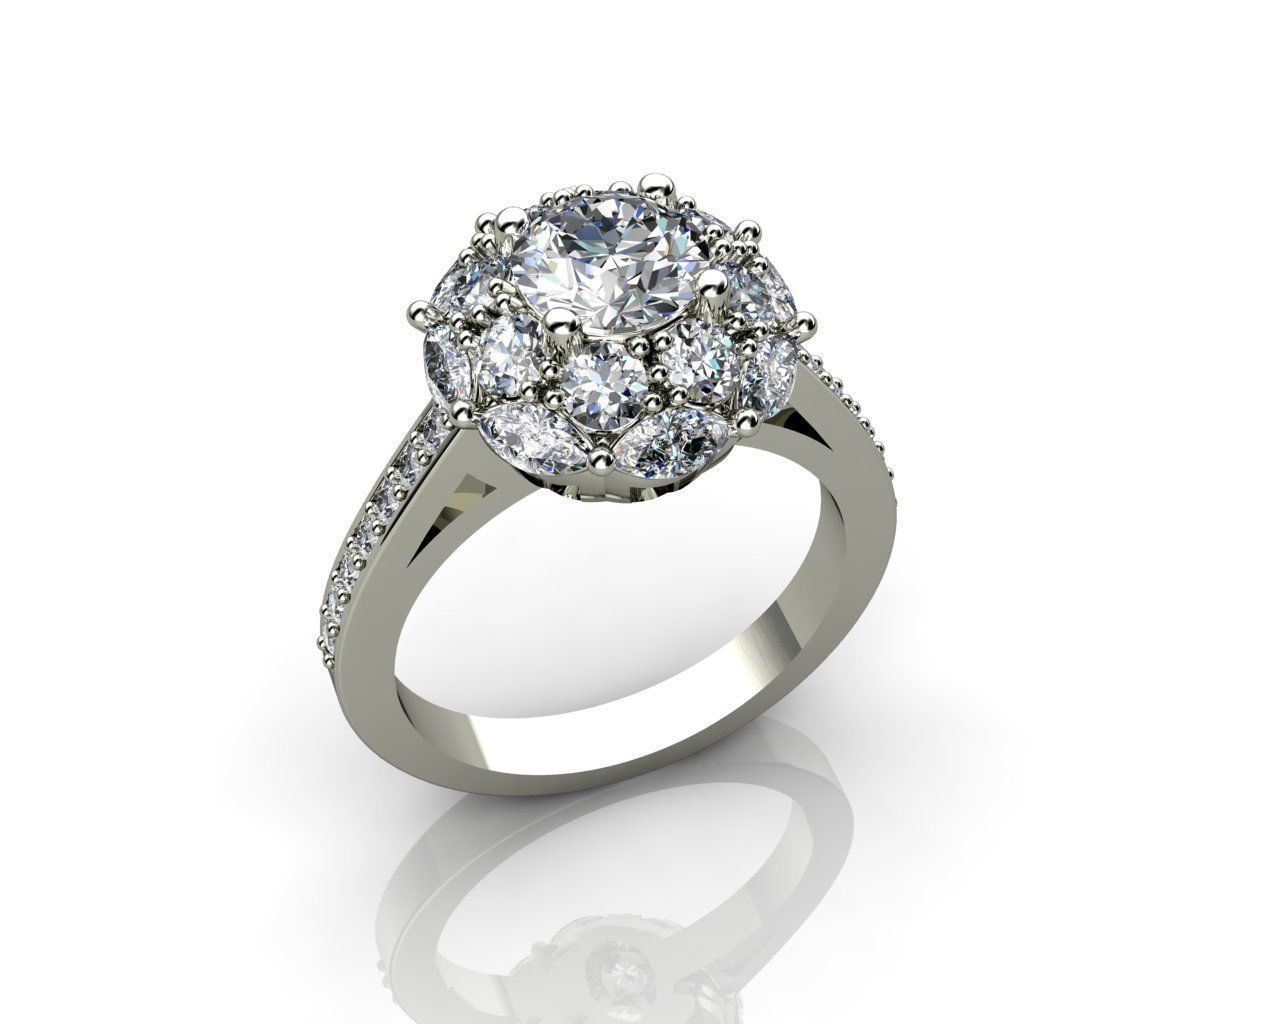 vintage rings the new diamond for style brides who bands break mold antique inspired ljzvdtw